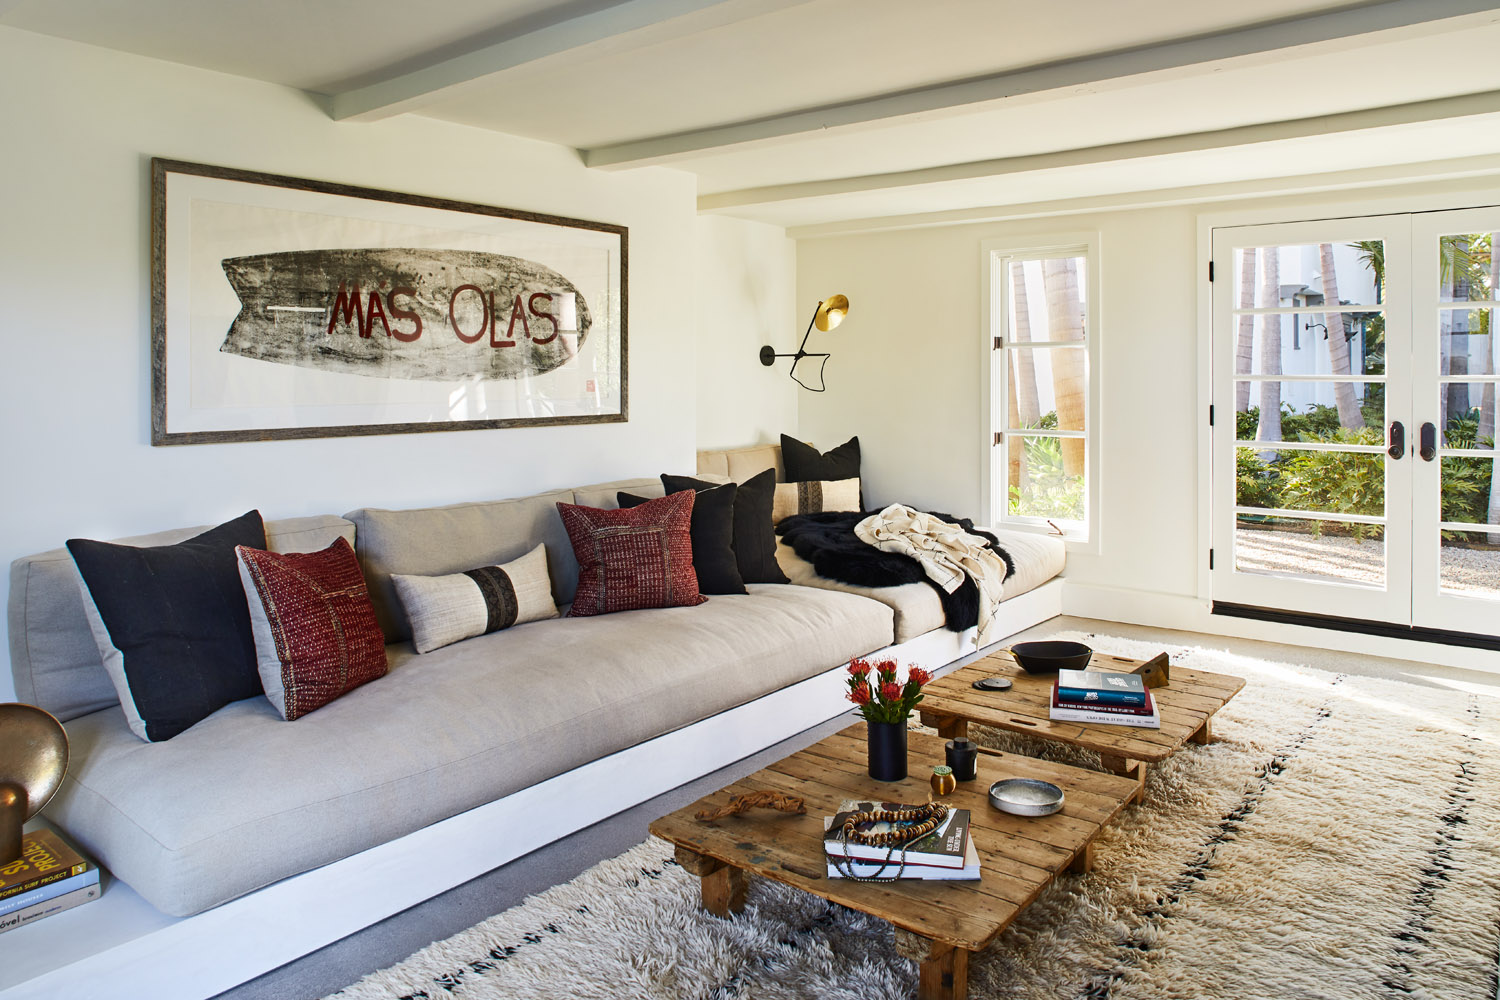 Home Tour-Making Waves in Malibu 8.jpg